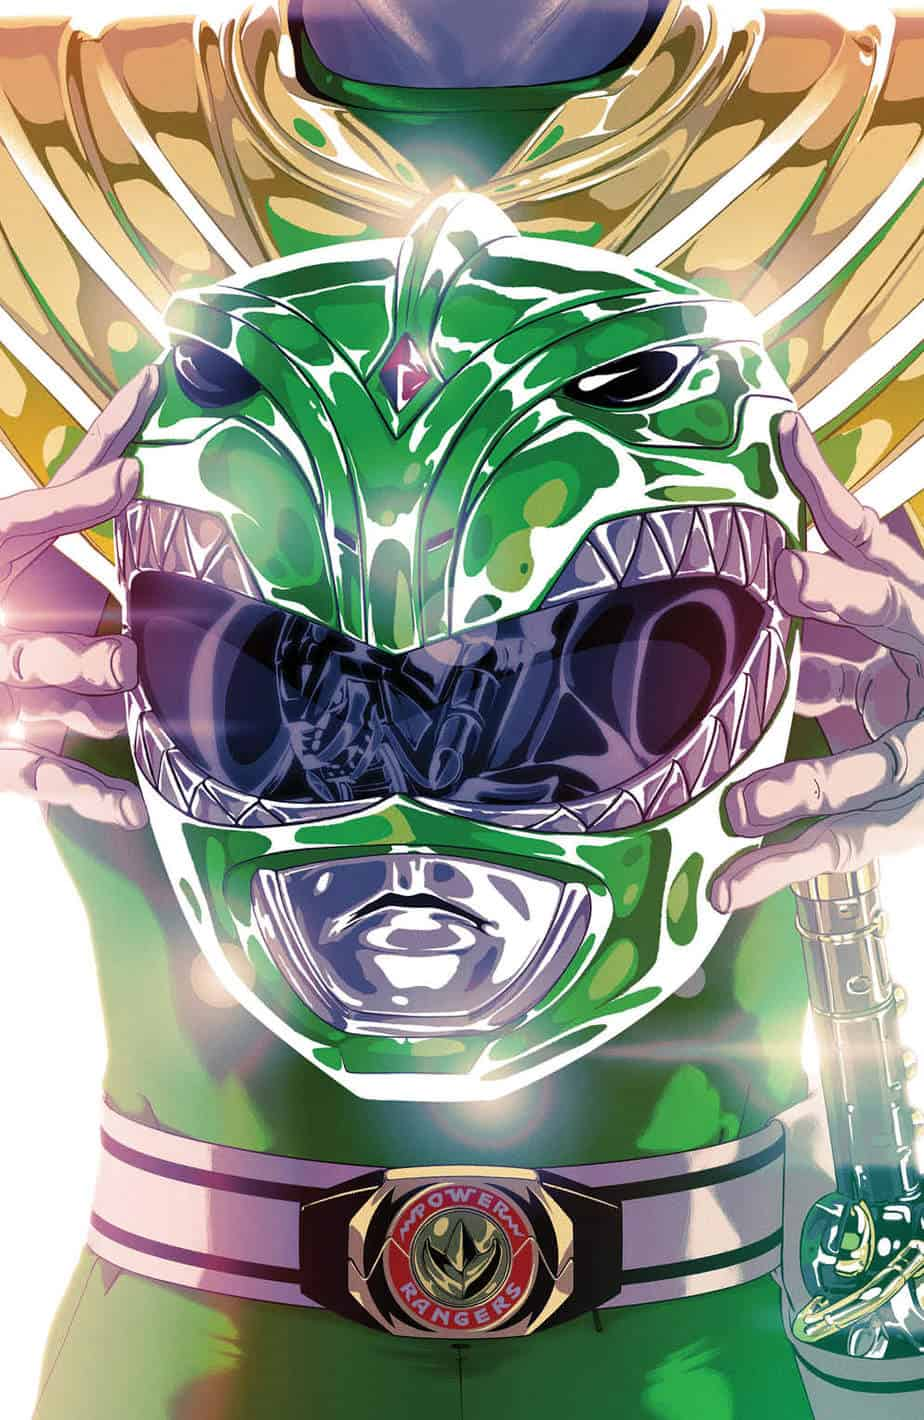 Mighty Morphin Power Rangers #49 - Foil Variant Cover